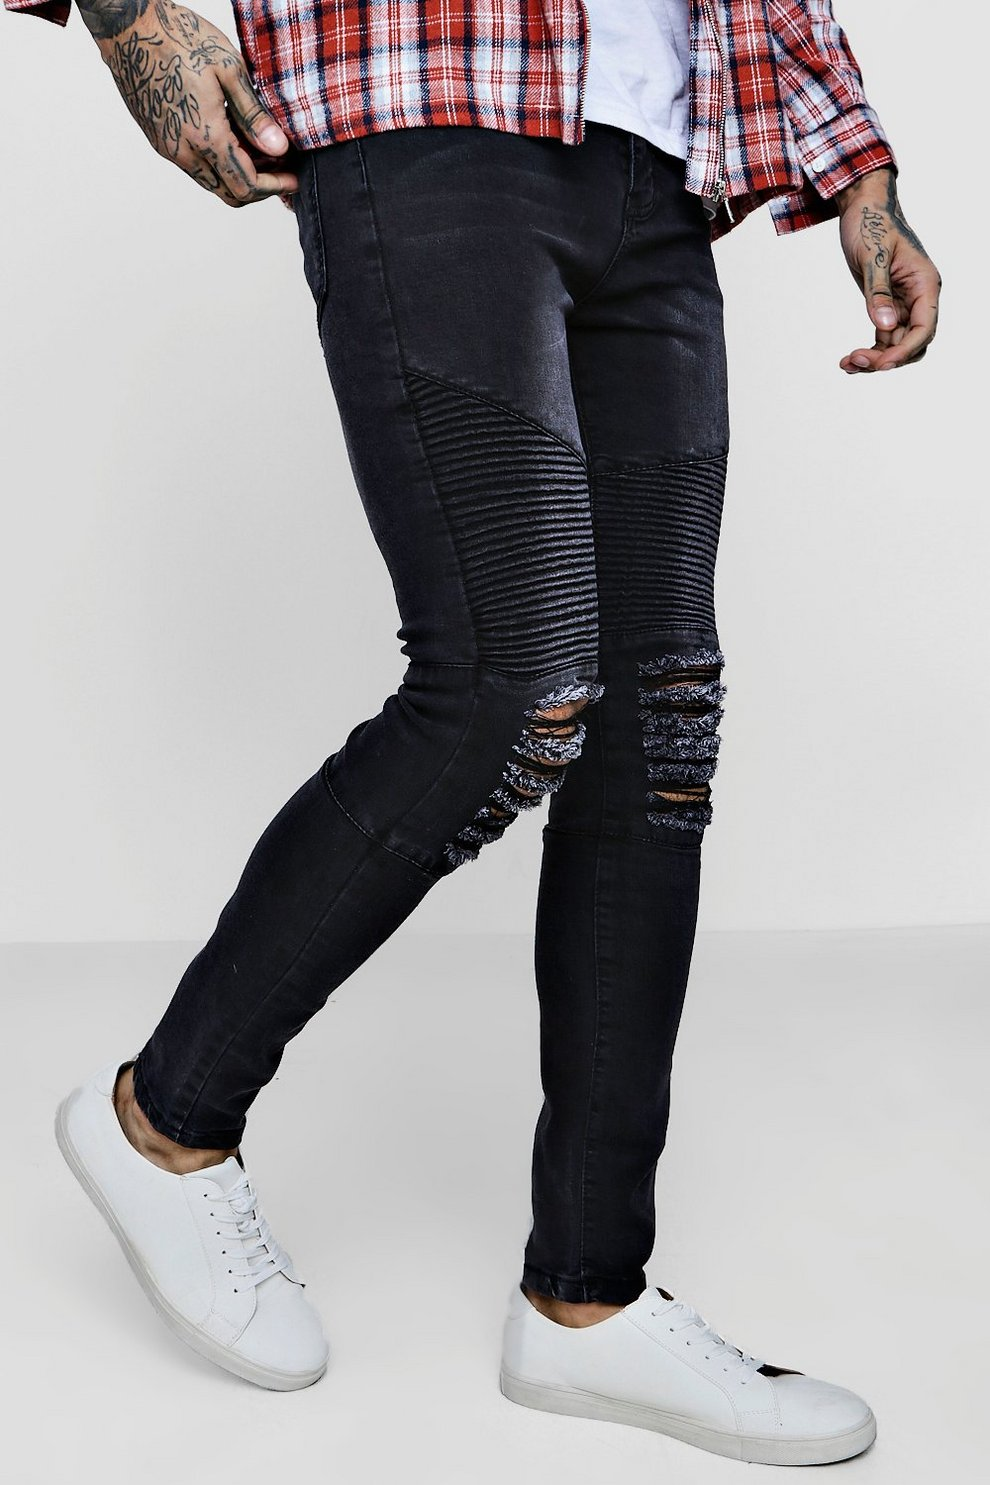 Cheap How Much Store Sale Boohoo Super Skinny Ripped Biker Jeans Free Shipping Visa Payment With Credit Card Sale Online Free Shipping Clearance Store YxBH9DtOH